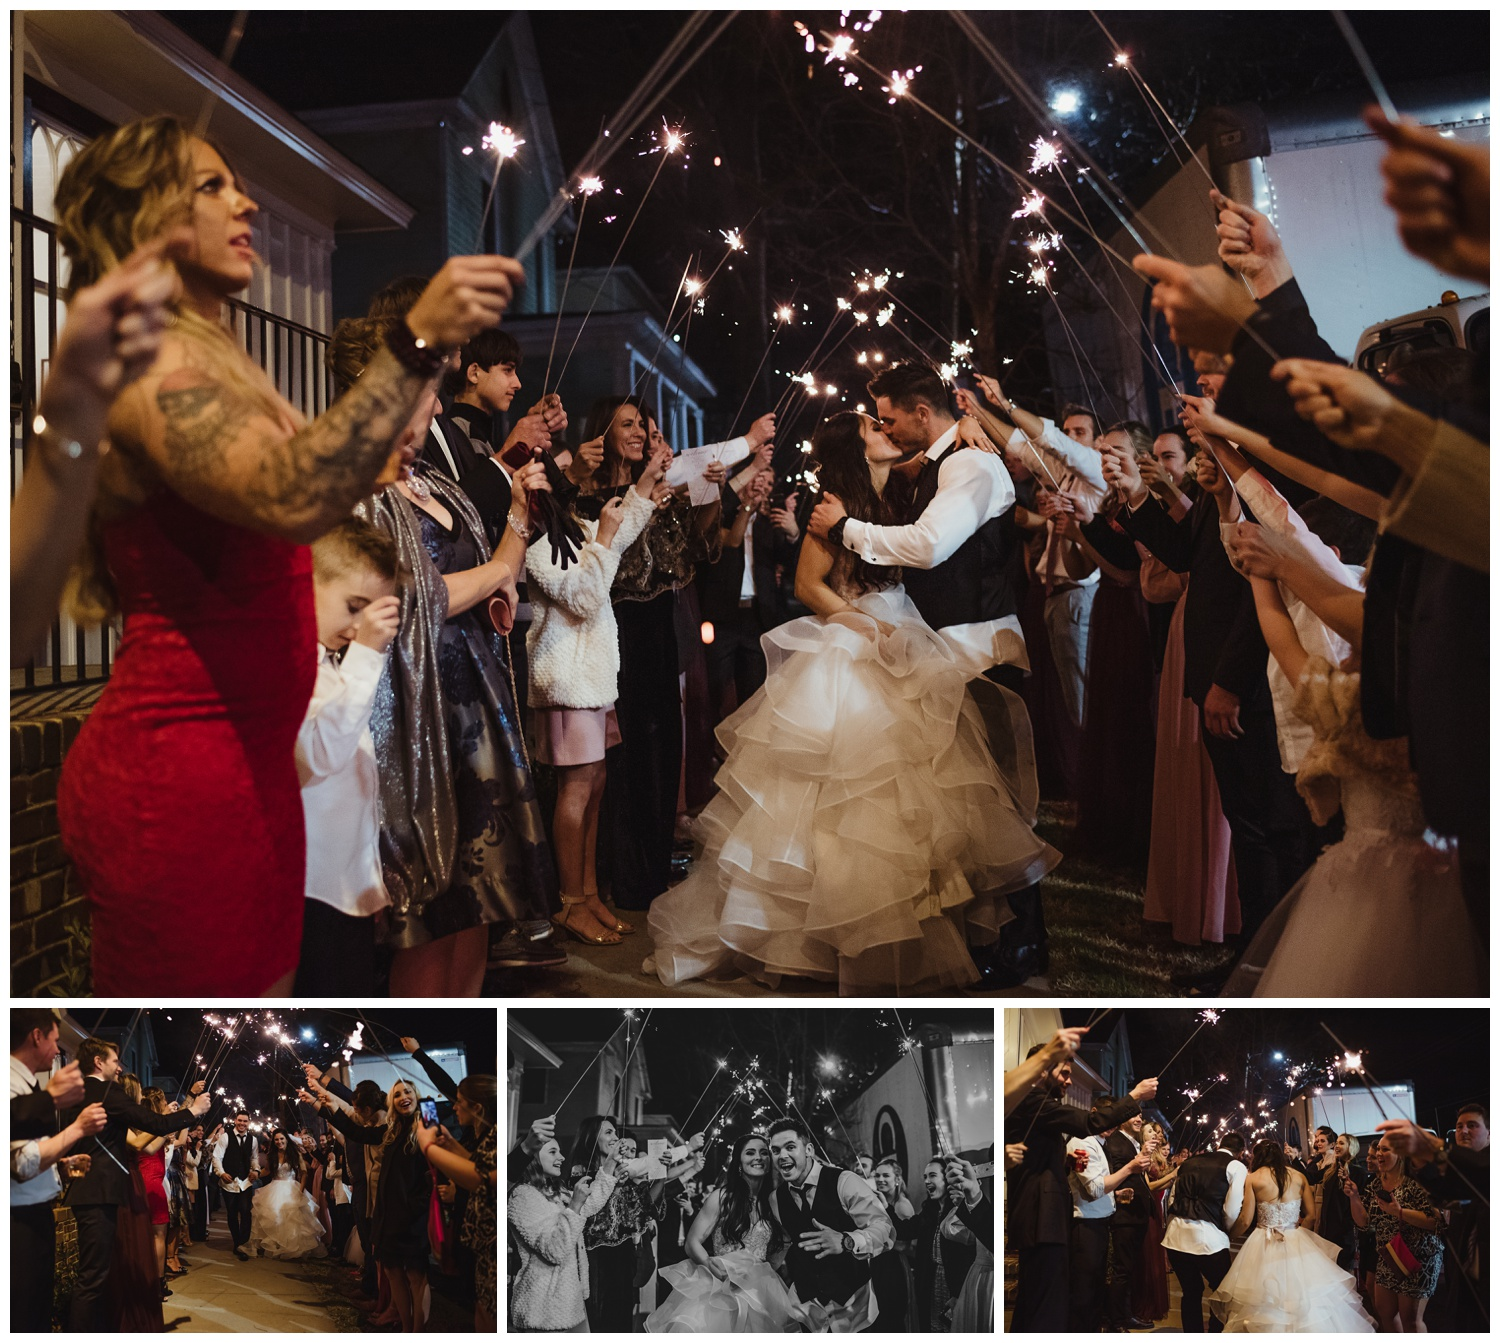 The bride and groom had a sparkler exit after their wedding reception at All Saints Chapel in Raleigh, North Carolina, pictures by Rose Trail Images.